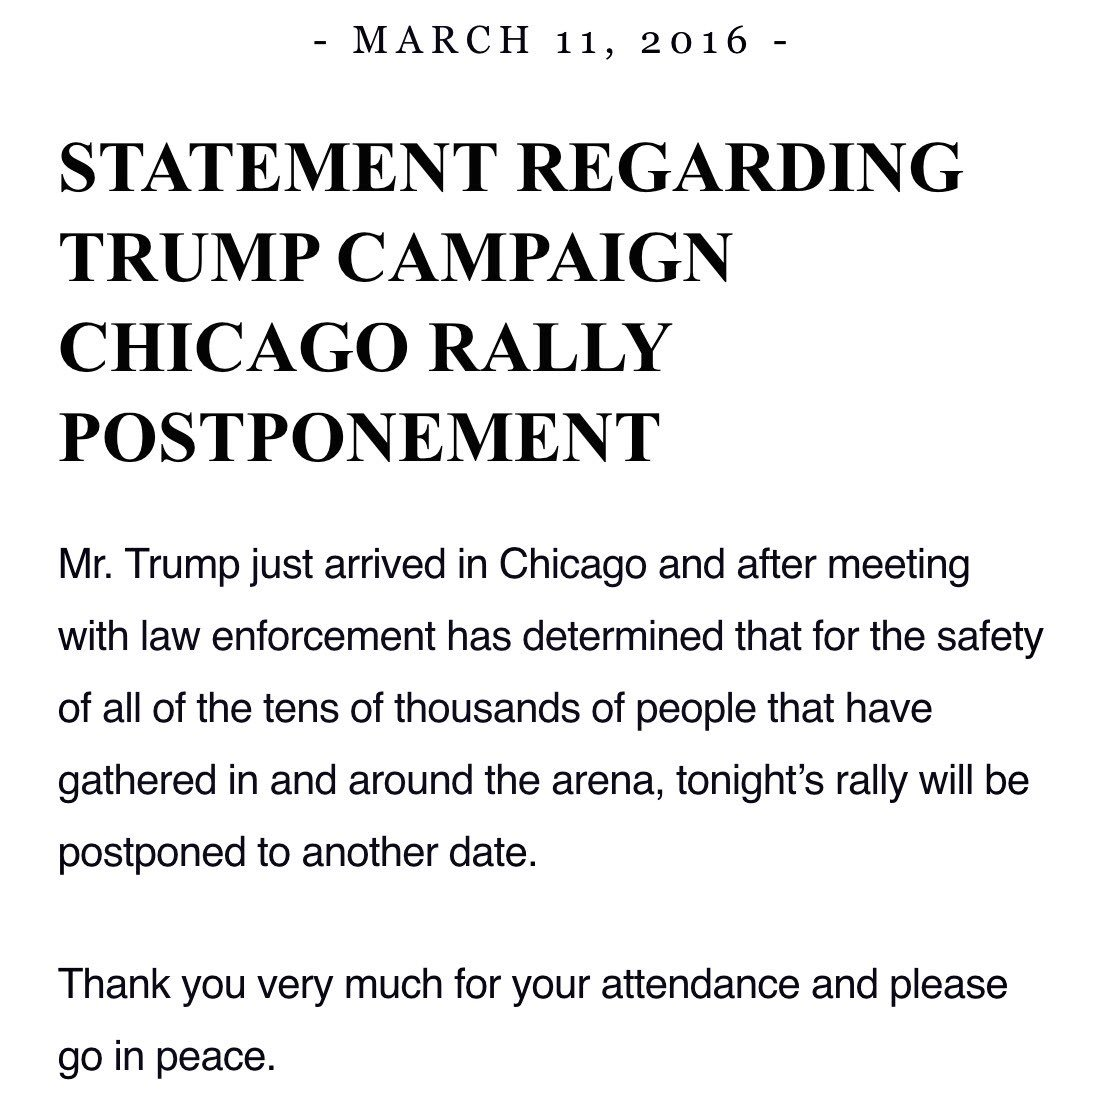 STATEMENT REGARDING TRUMP CAMPAIGN CHICAGO RALLY POSTPONEMENT. #Trump2016 https://t.co/XT9fcK1JrX https://t.co/U4XxJPXLRk